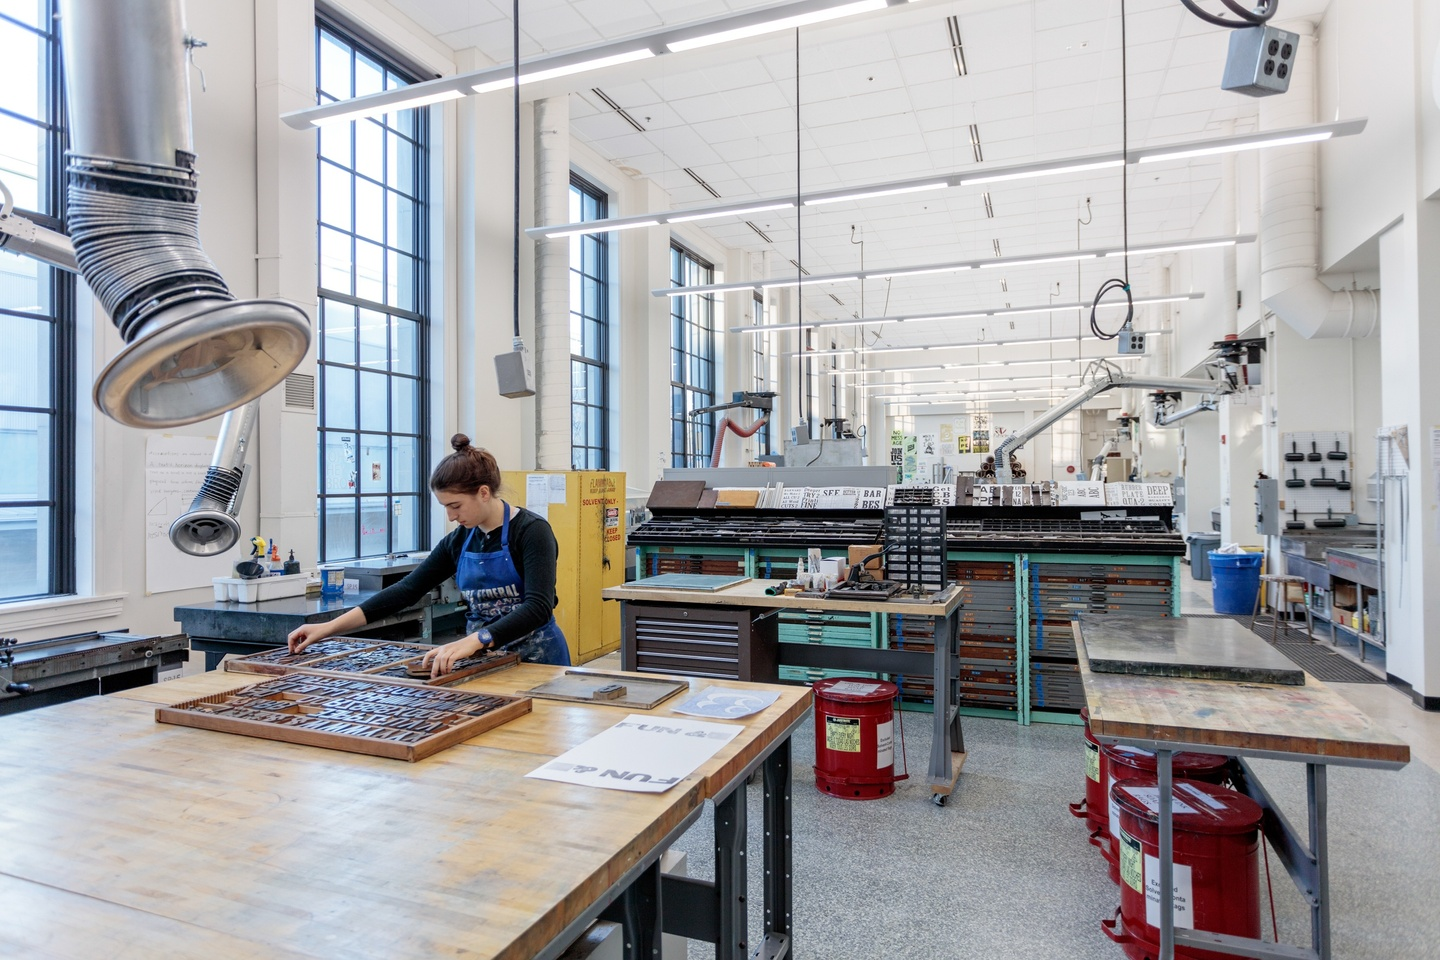 Person arranges a tray of moveable type on a table in a printmaking space with high ceilings.